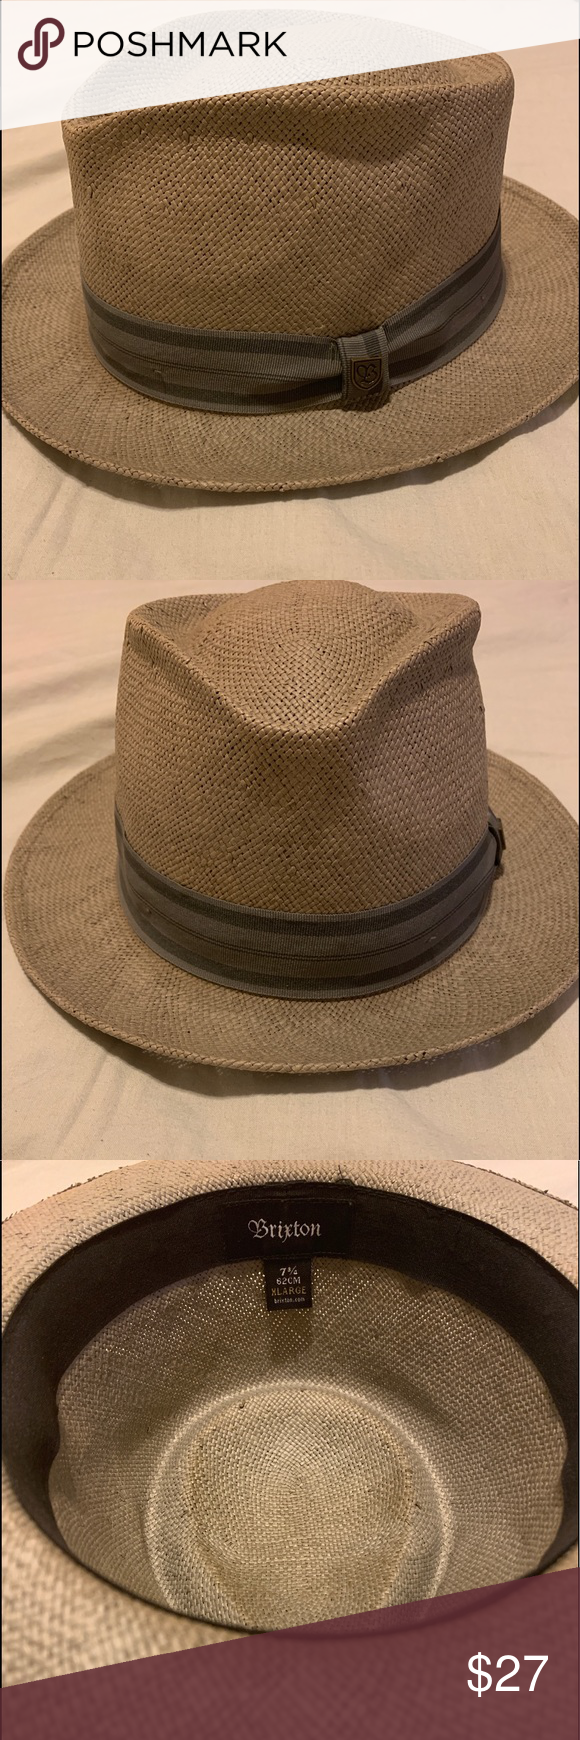 Brixton Gray Hat Size Xl 7 3 4 100 Paper Size Xl With Natural Imperfections Per Manufacturer Great Condition Priced To Sell Hat Sizes Hats Things To Sell